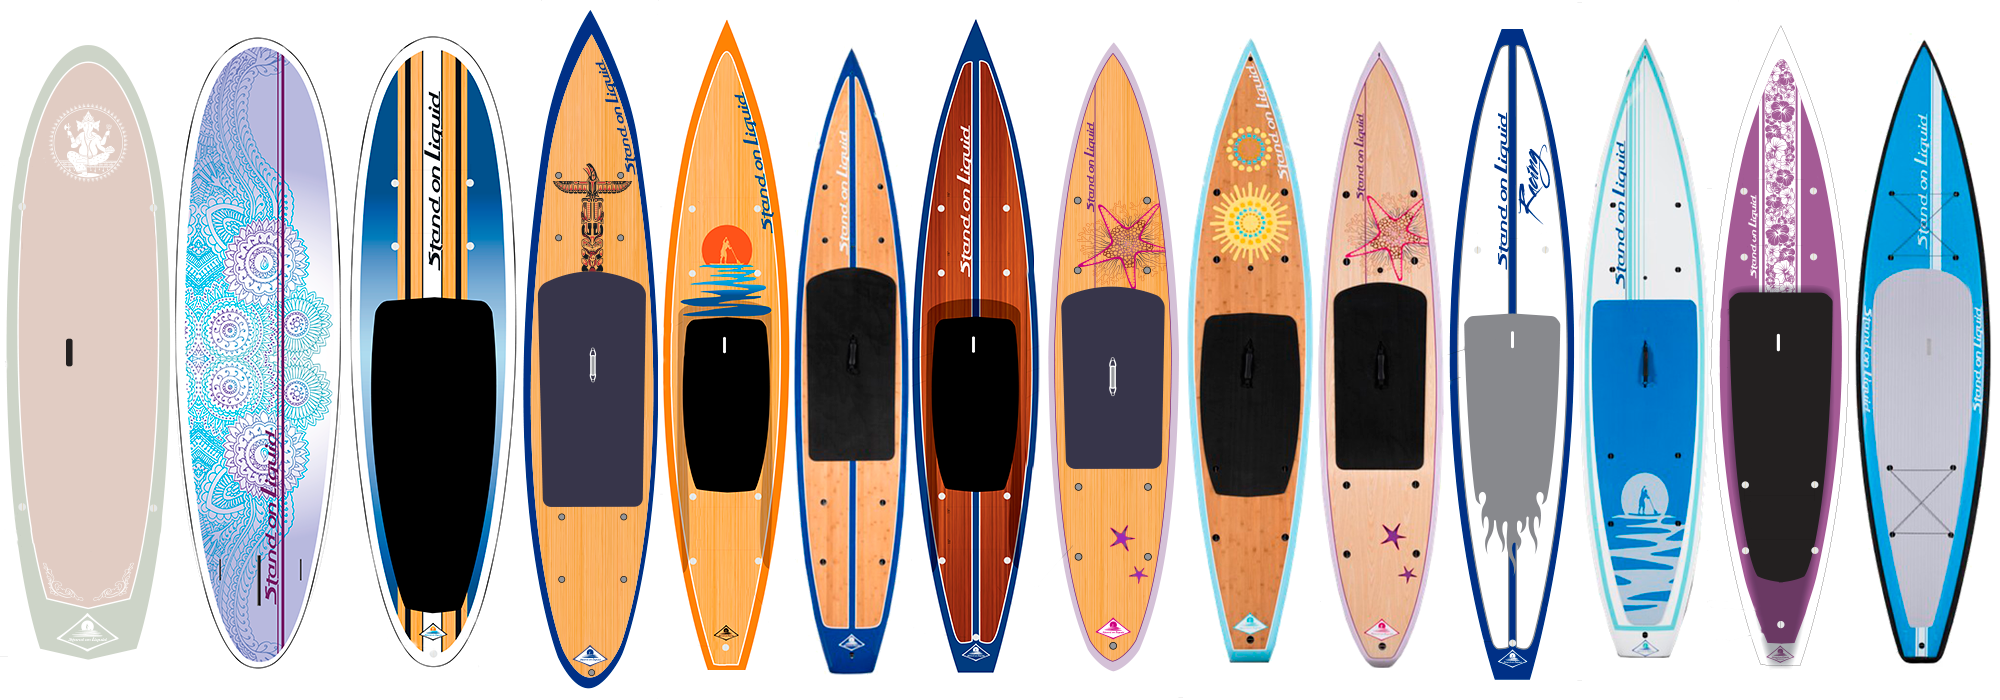 Stand on Liquid paddle board design Anouk Tapper